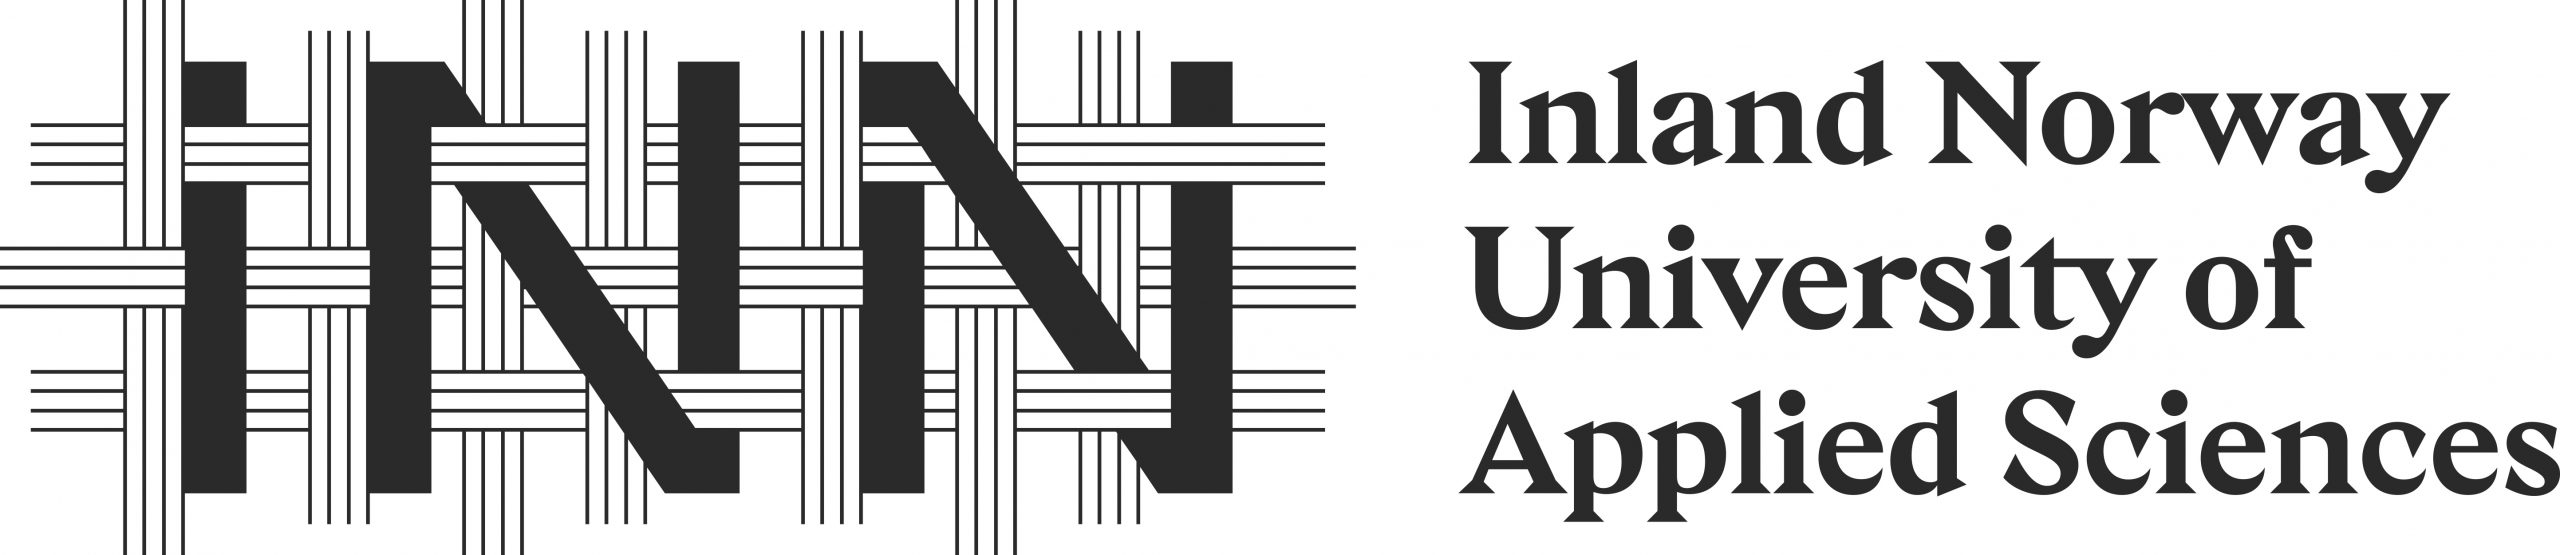 inland norway university f applied sciences